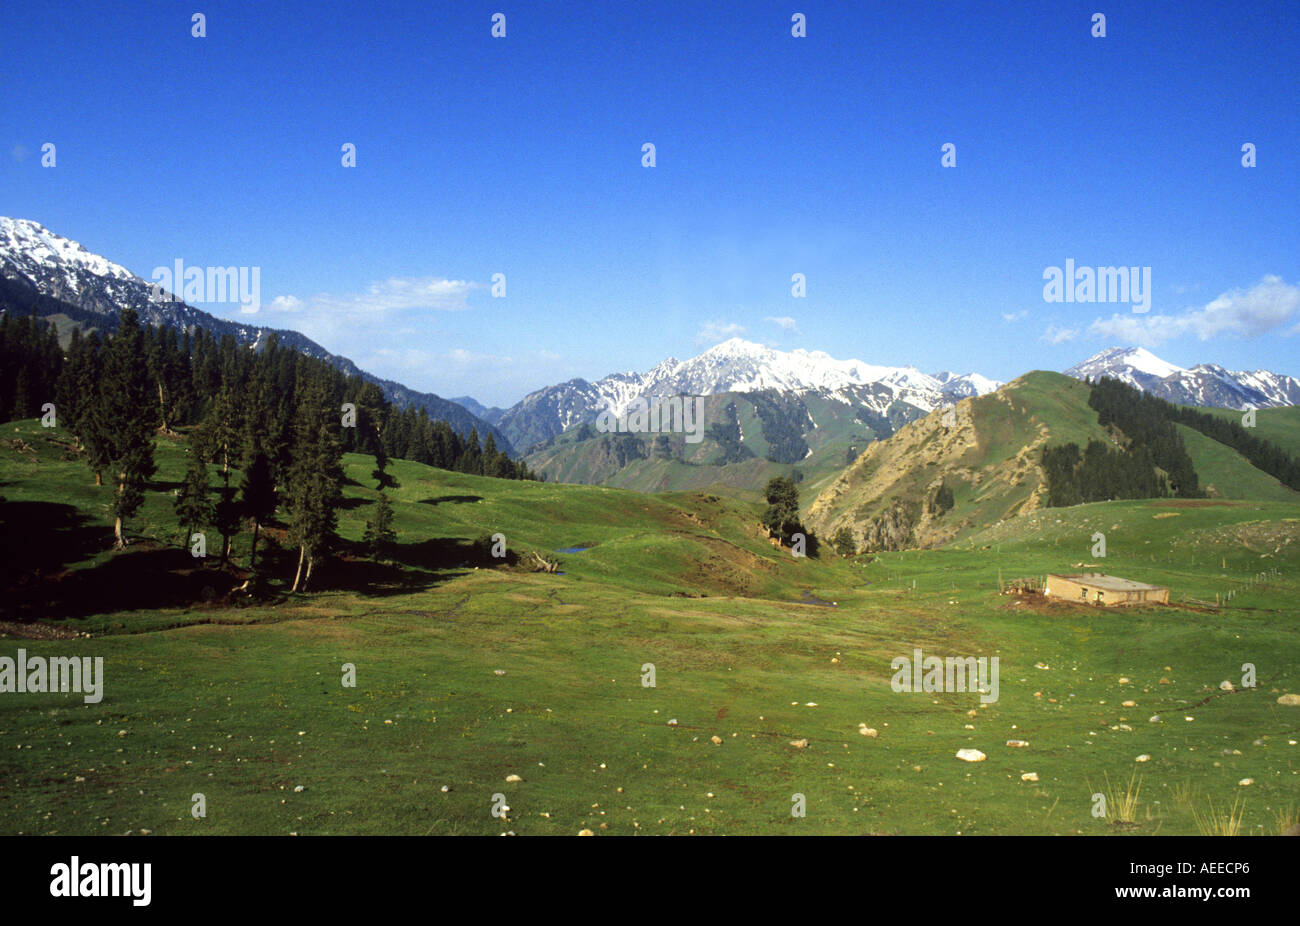 View of the Tian Shan Mountains in Western China. Tian Shan means Heavenly Mountains . Stock Photo